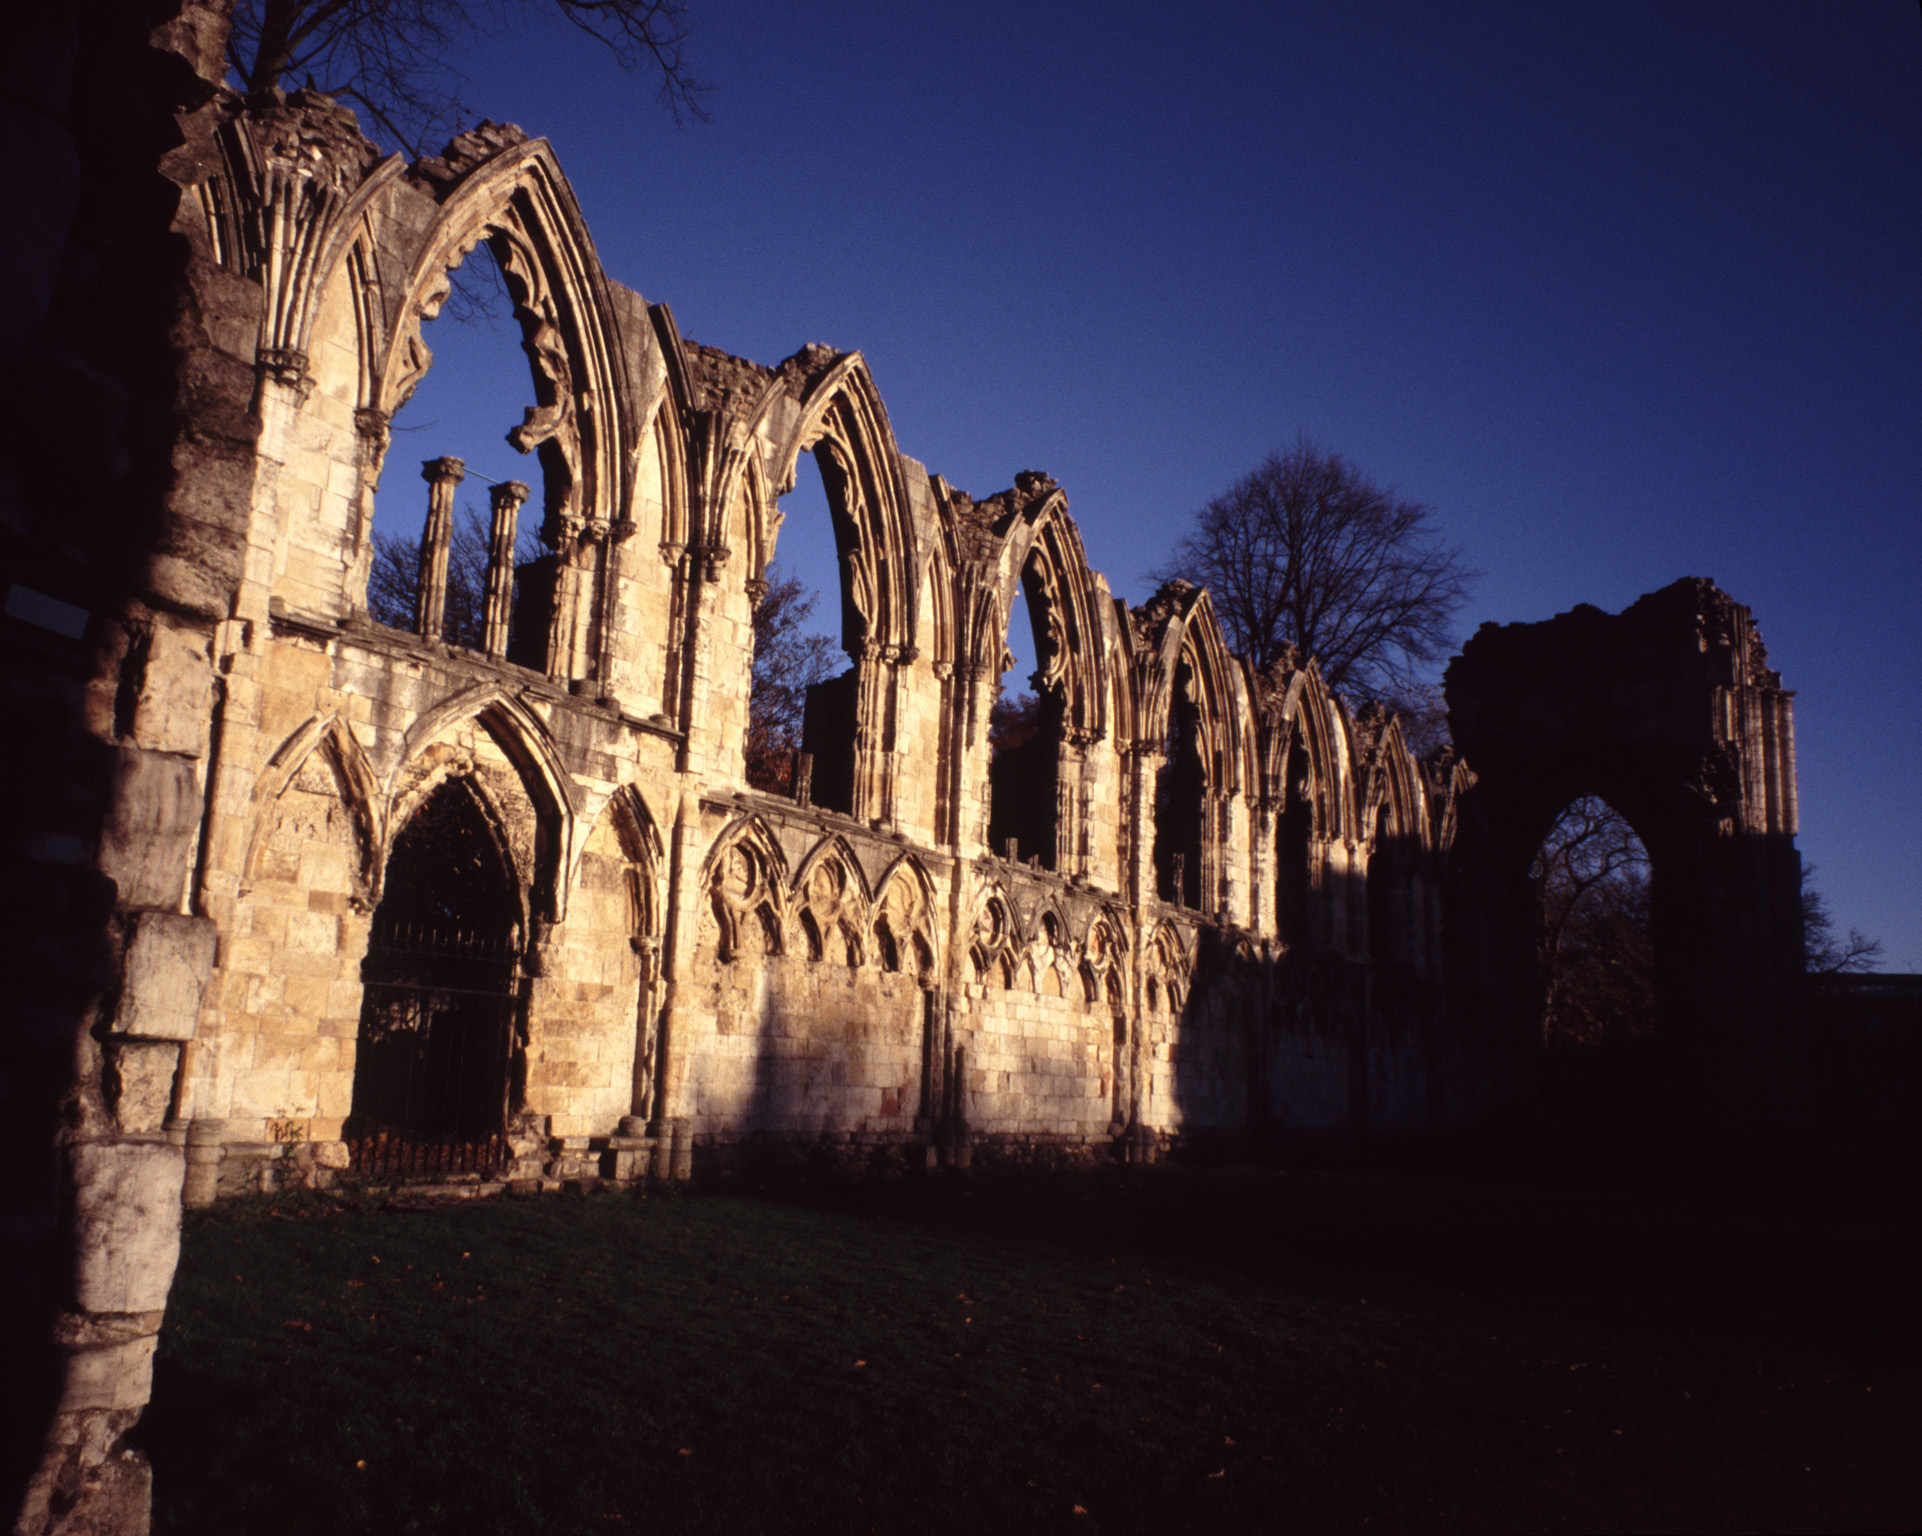 Historical Ruins of St Marys Abbey Church with Dark Shadows, York, England